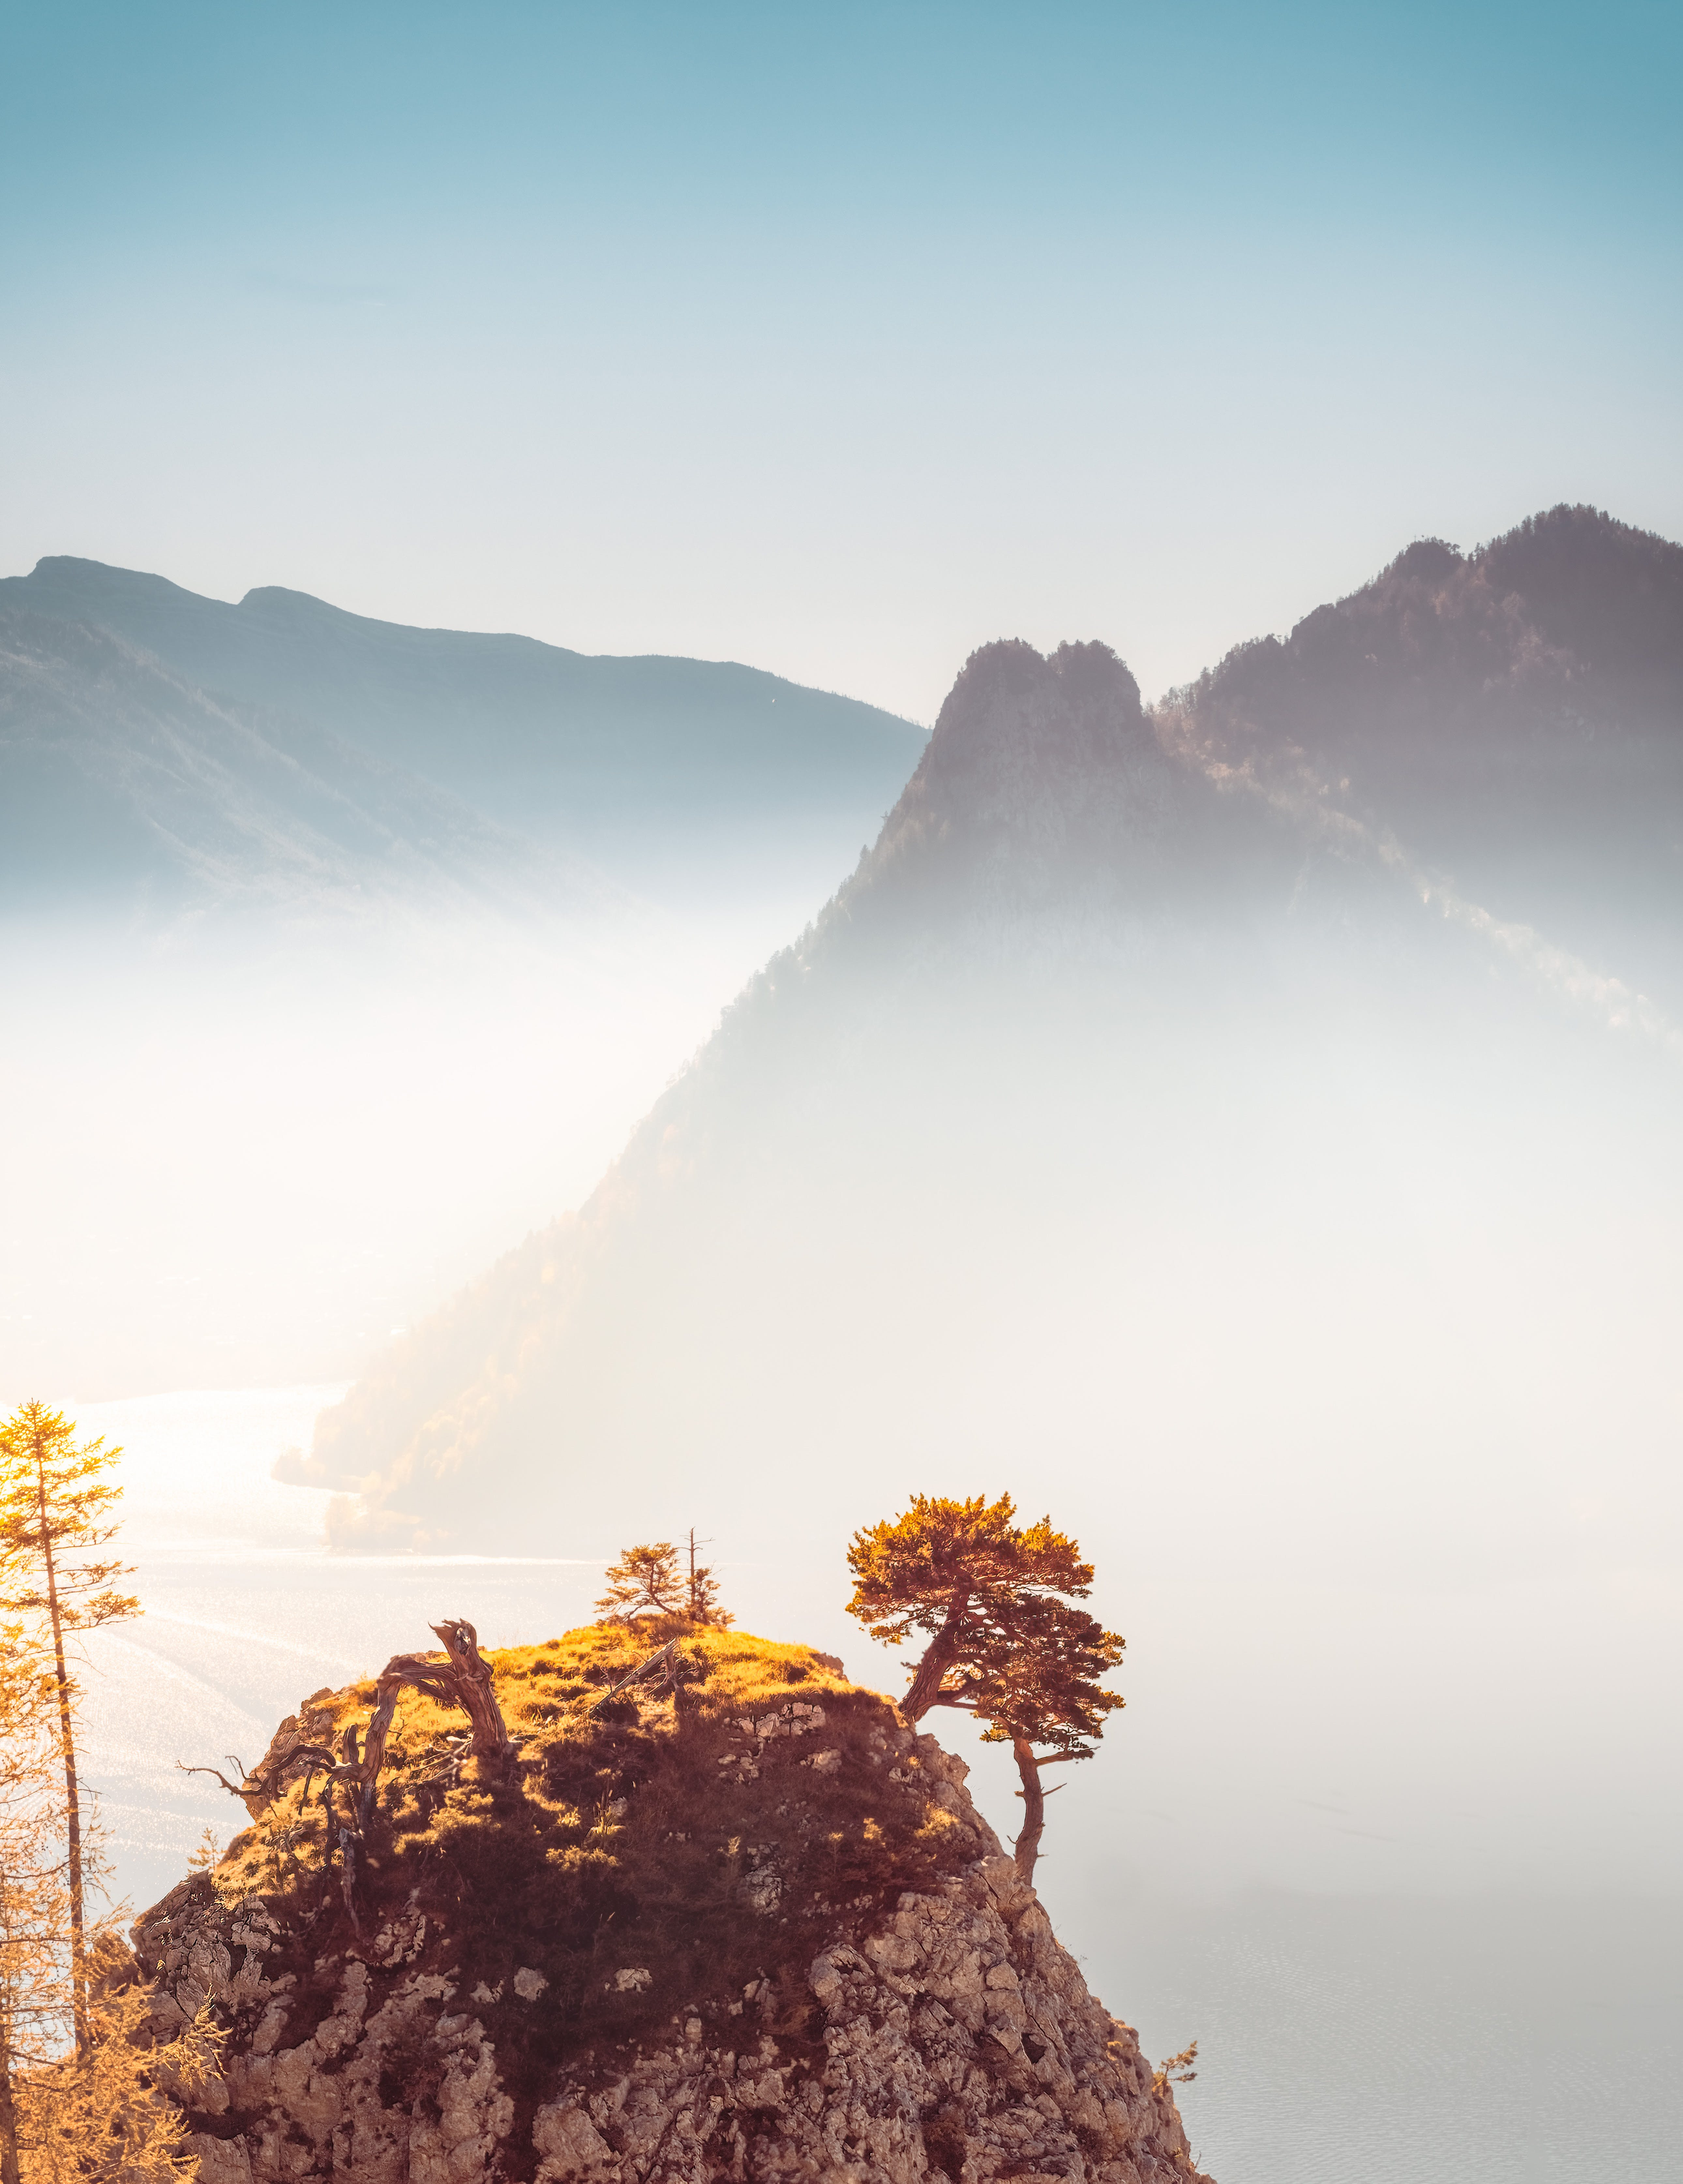 Mountain Covered by Fog